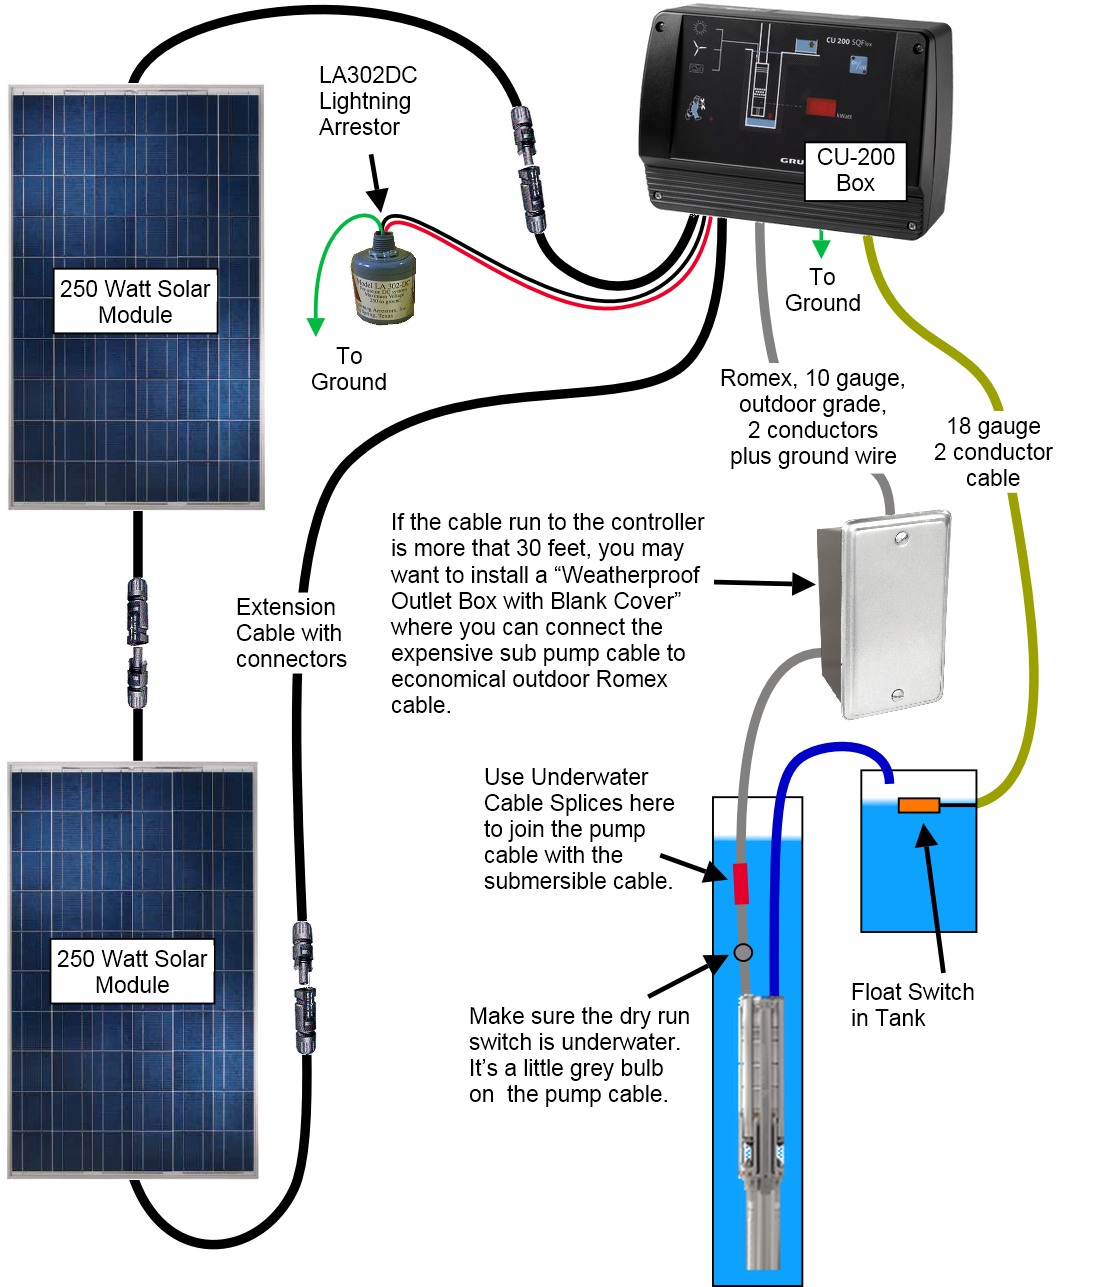 grundfos sqflex installation diagram?t=1422423383 grundfos sqflex solar water pump wiring diagram submersible pump wiring diagram at panicattacktreatment.co